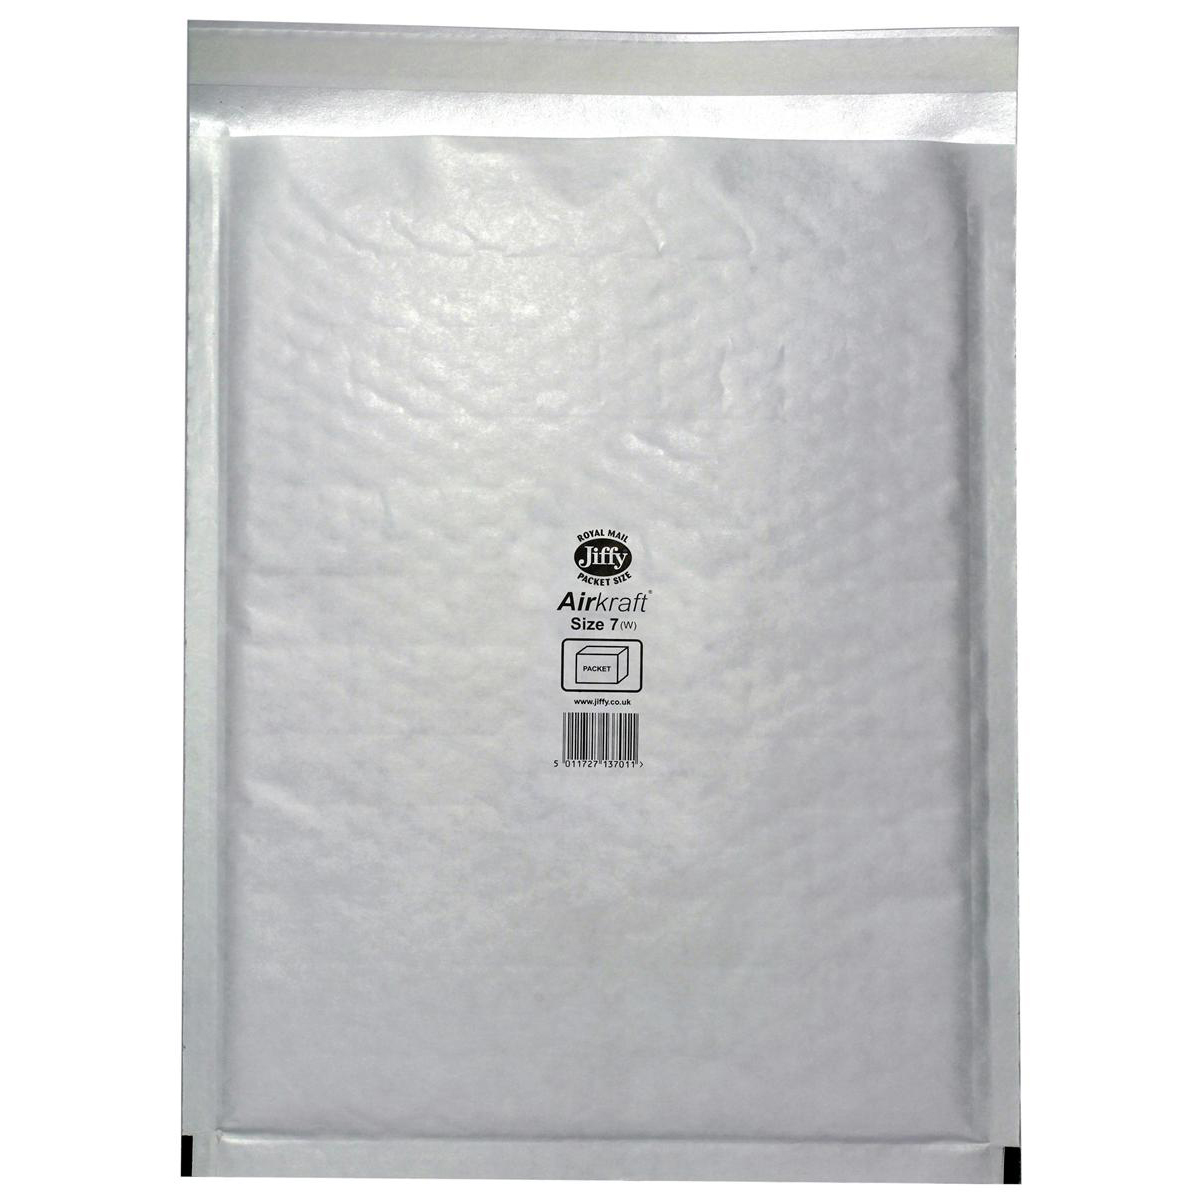 Padded Bags & Envelopes Jiffy Airkraft Bag Bubble-lined Peel and Seal Size 7 White 340x445mm Ref JL-7 Pack 50